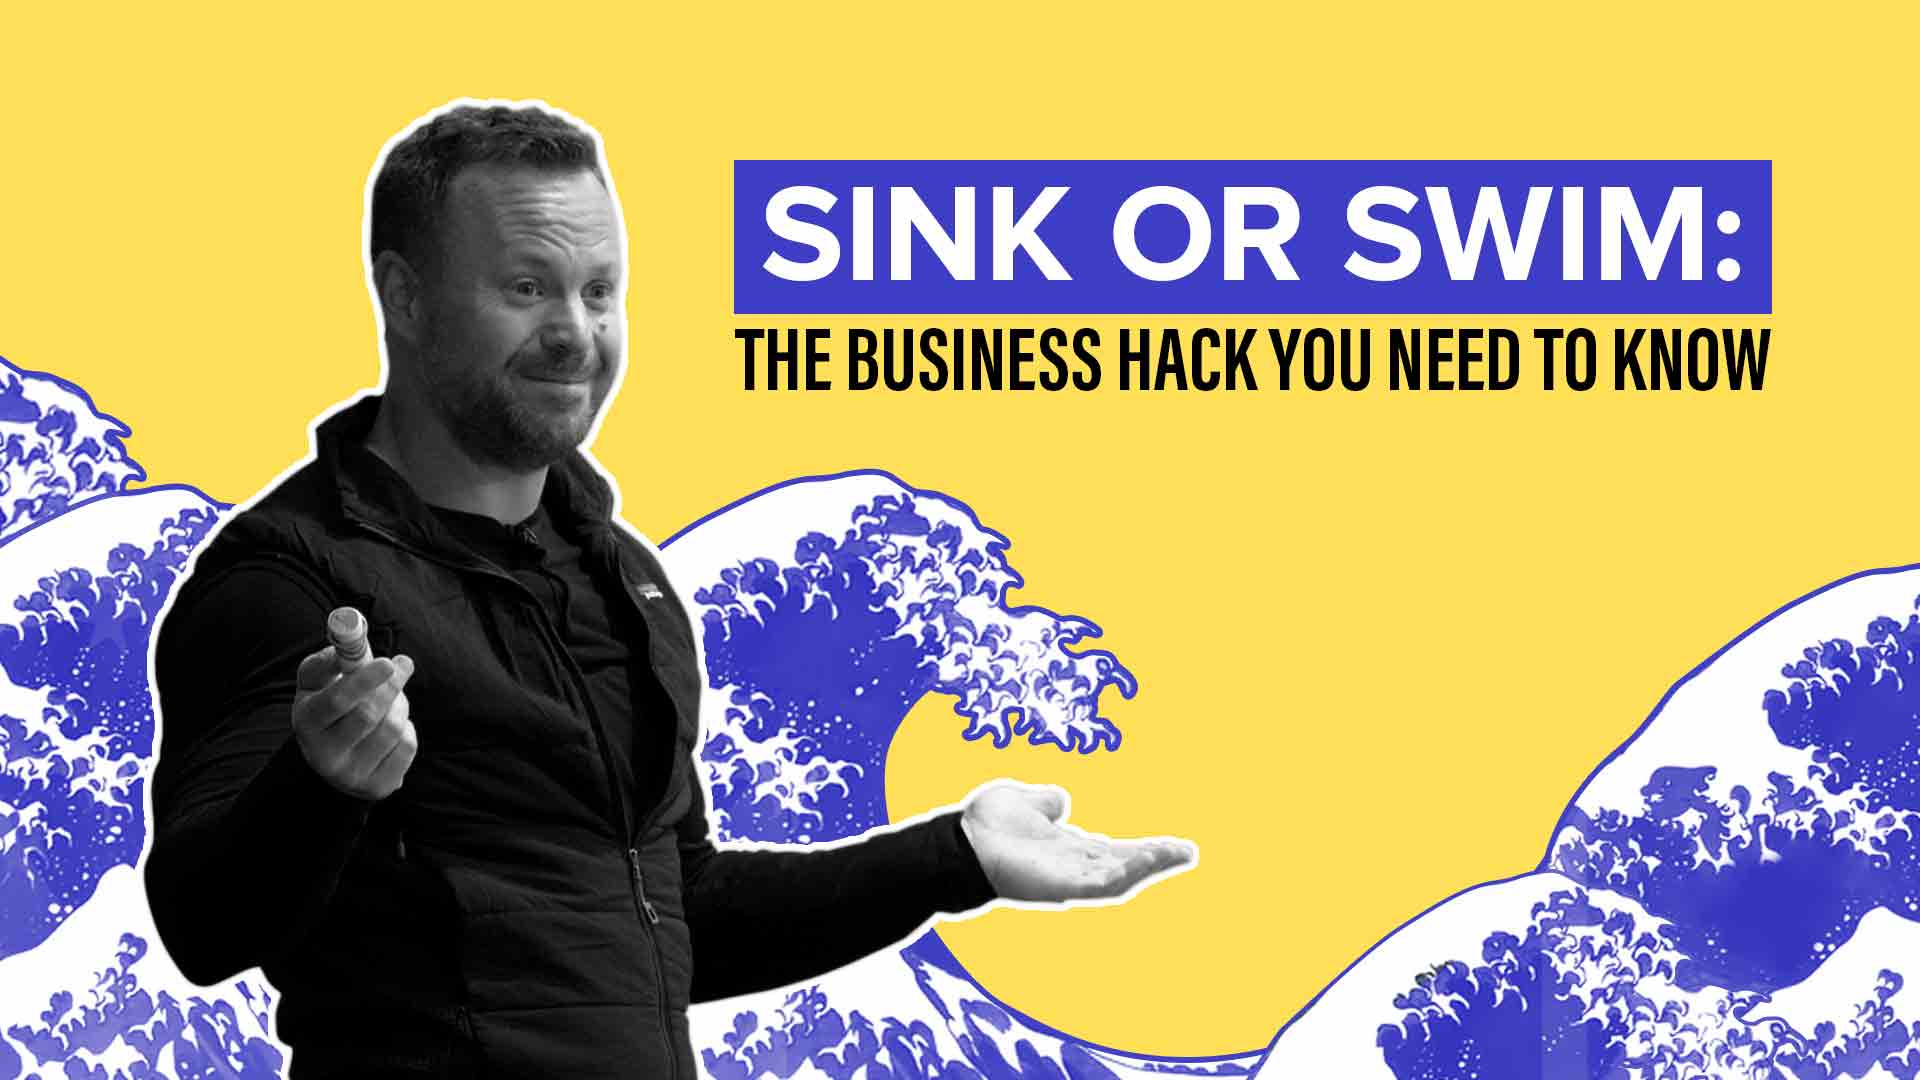 Sink or swim: The business hack you need to know